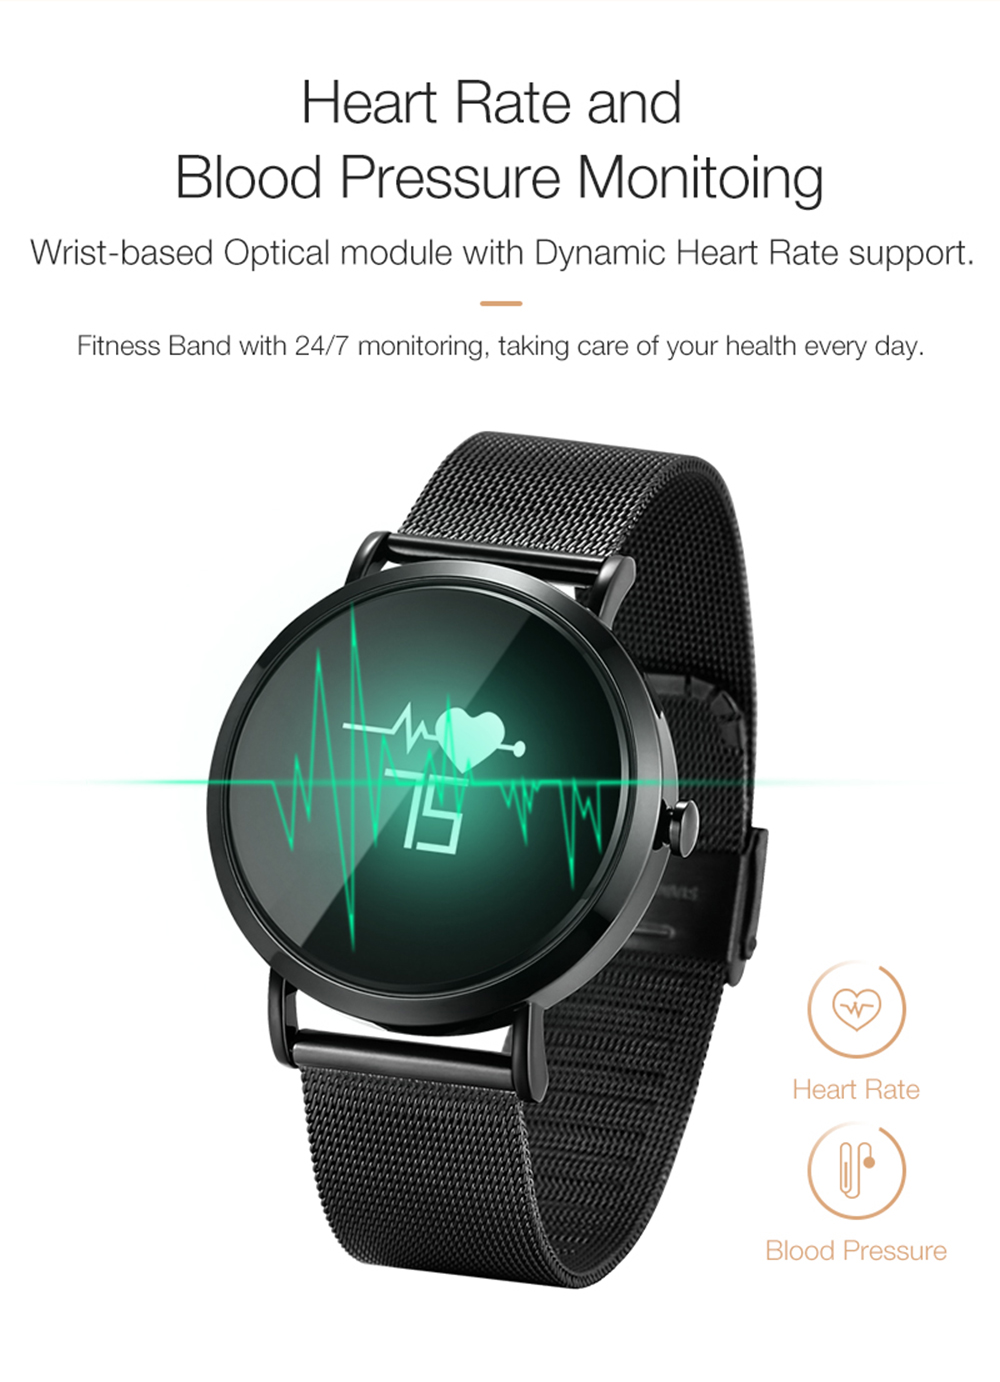 696 Smart Watch Men CV08 Wristwatch Women Sports Smartwatch Fitness Tracker Heart Rate Blood Pressure Monitor for Android IOS Ph 9